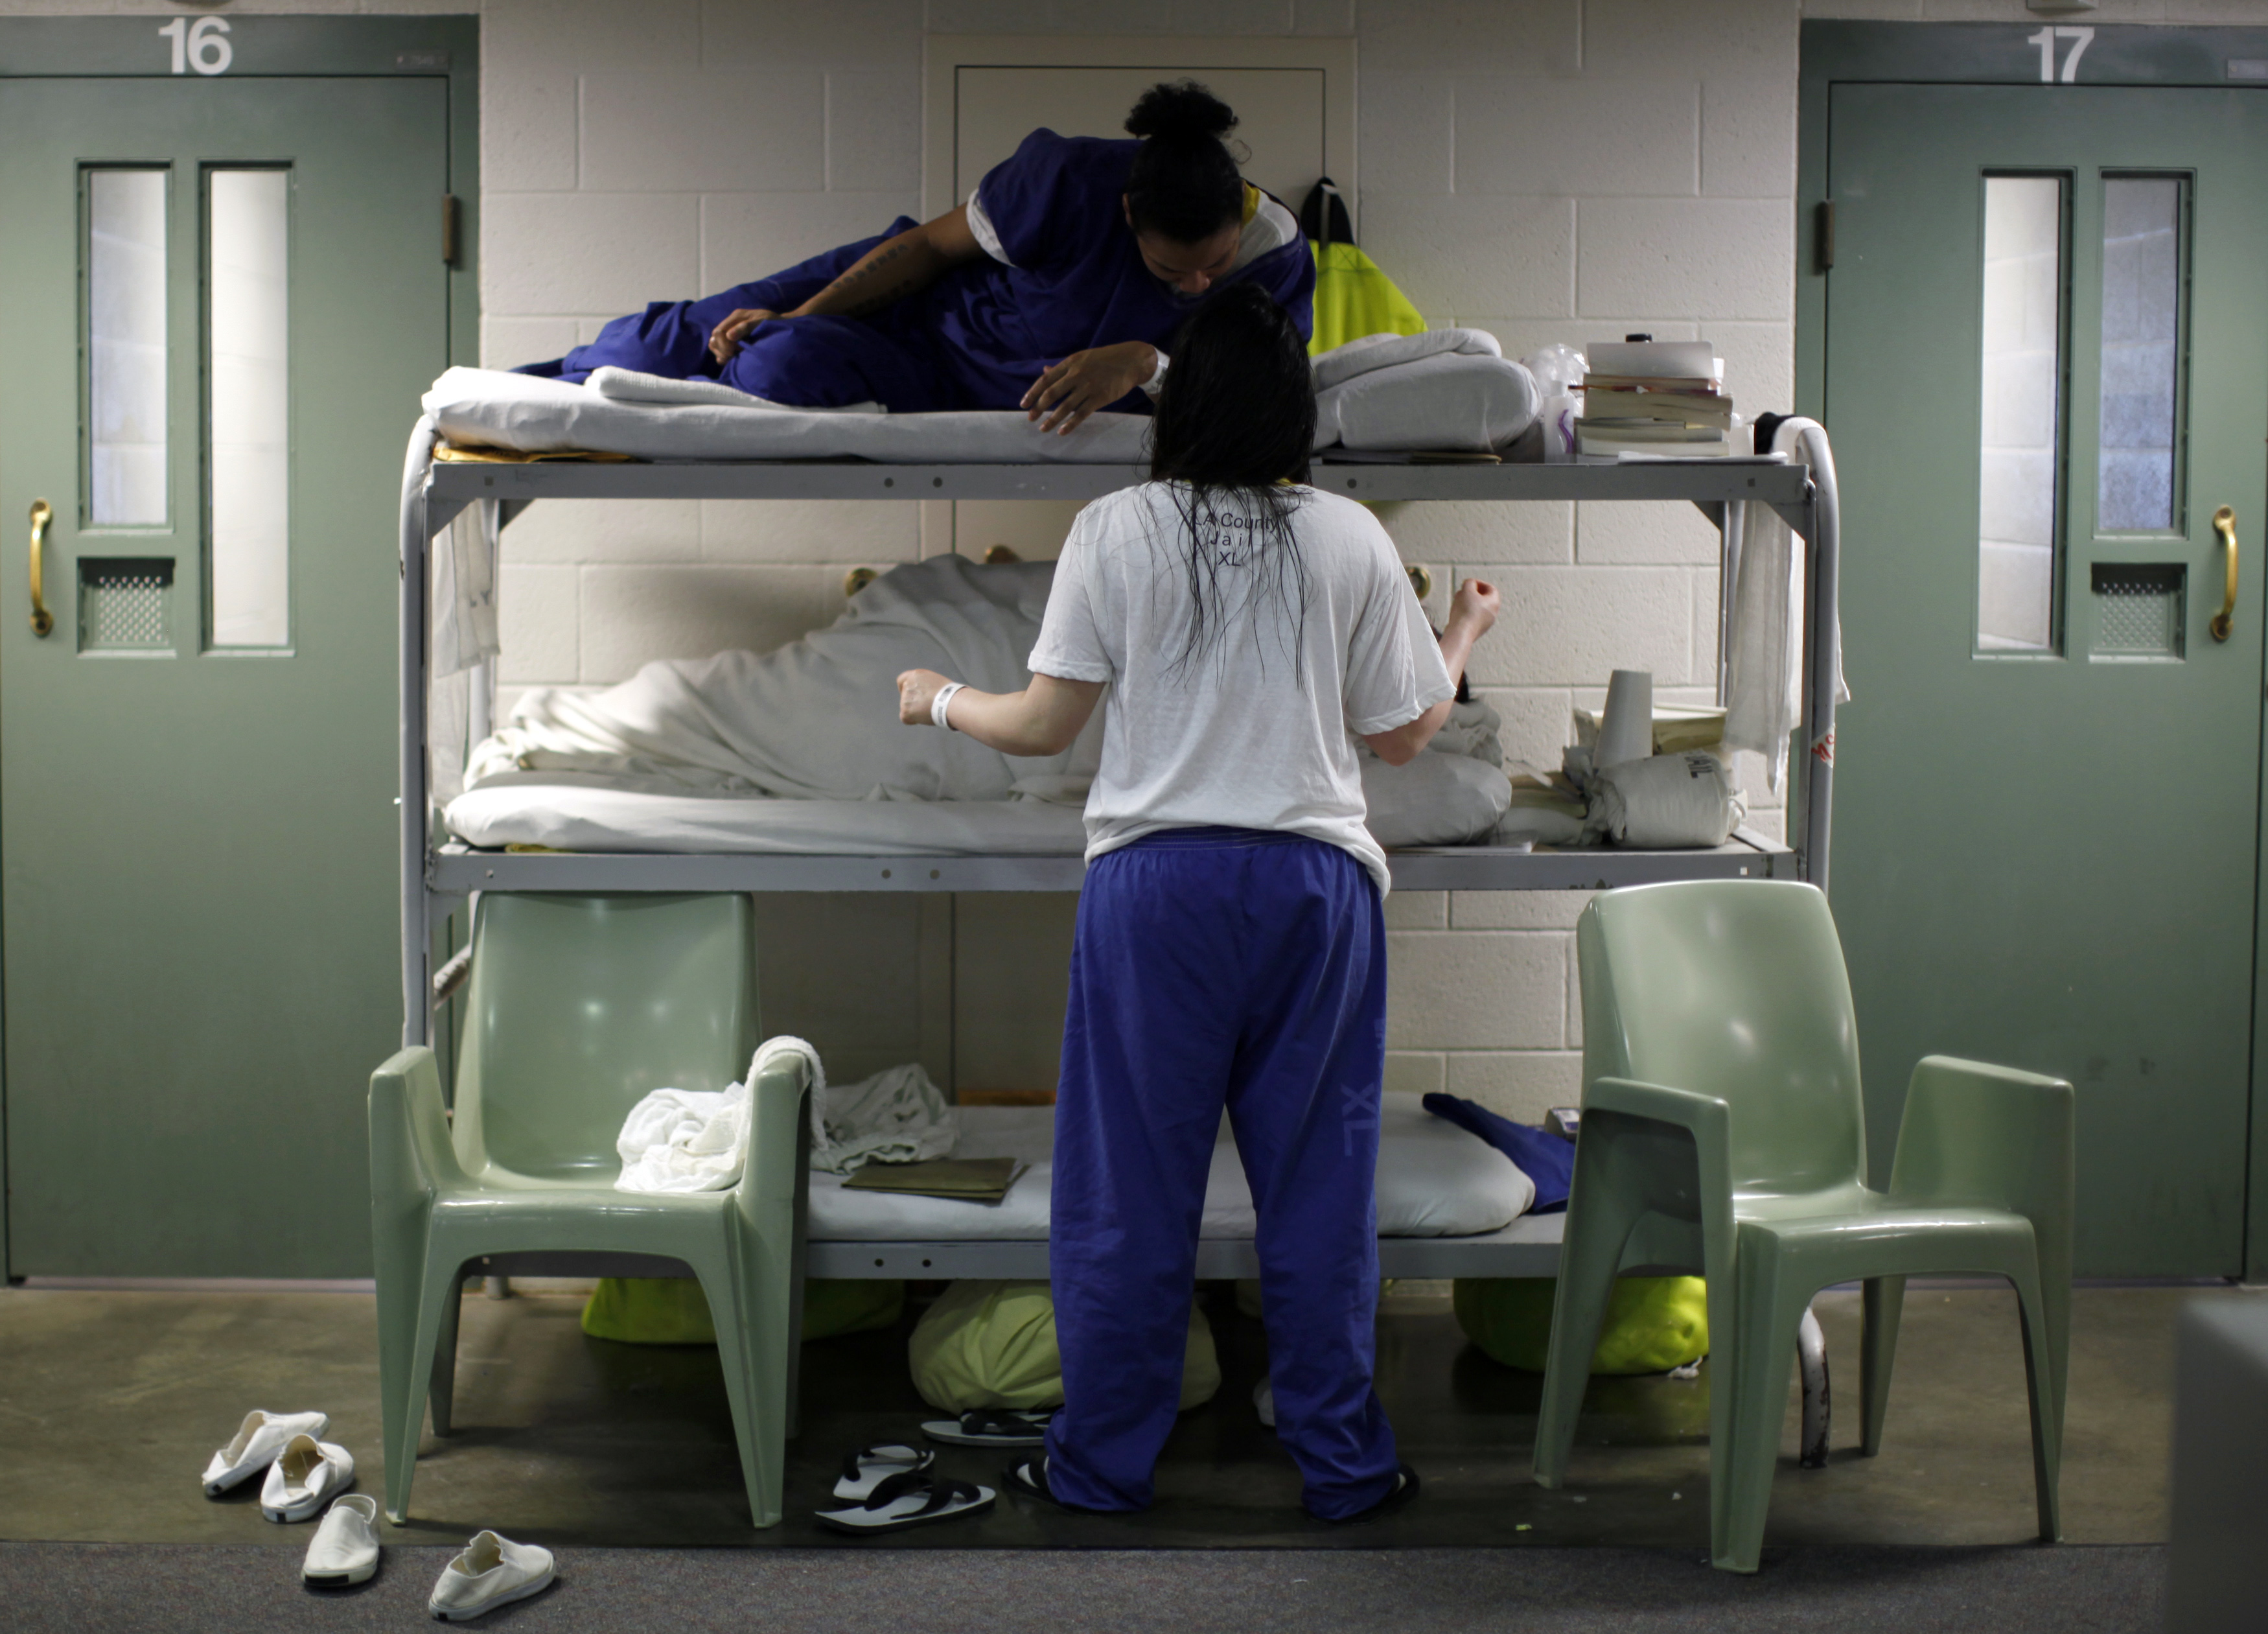 american essay overcrowding prison american essay overcrowding prison